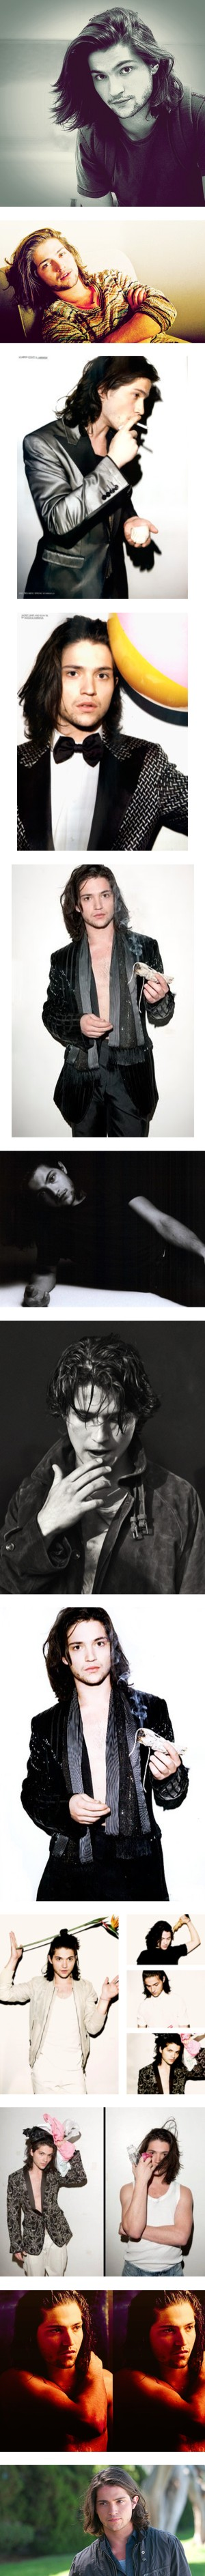 thomas mcdonell by crush5797 on Polyvore featuring thomas mcdonell, men, editorials, models and people